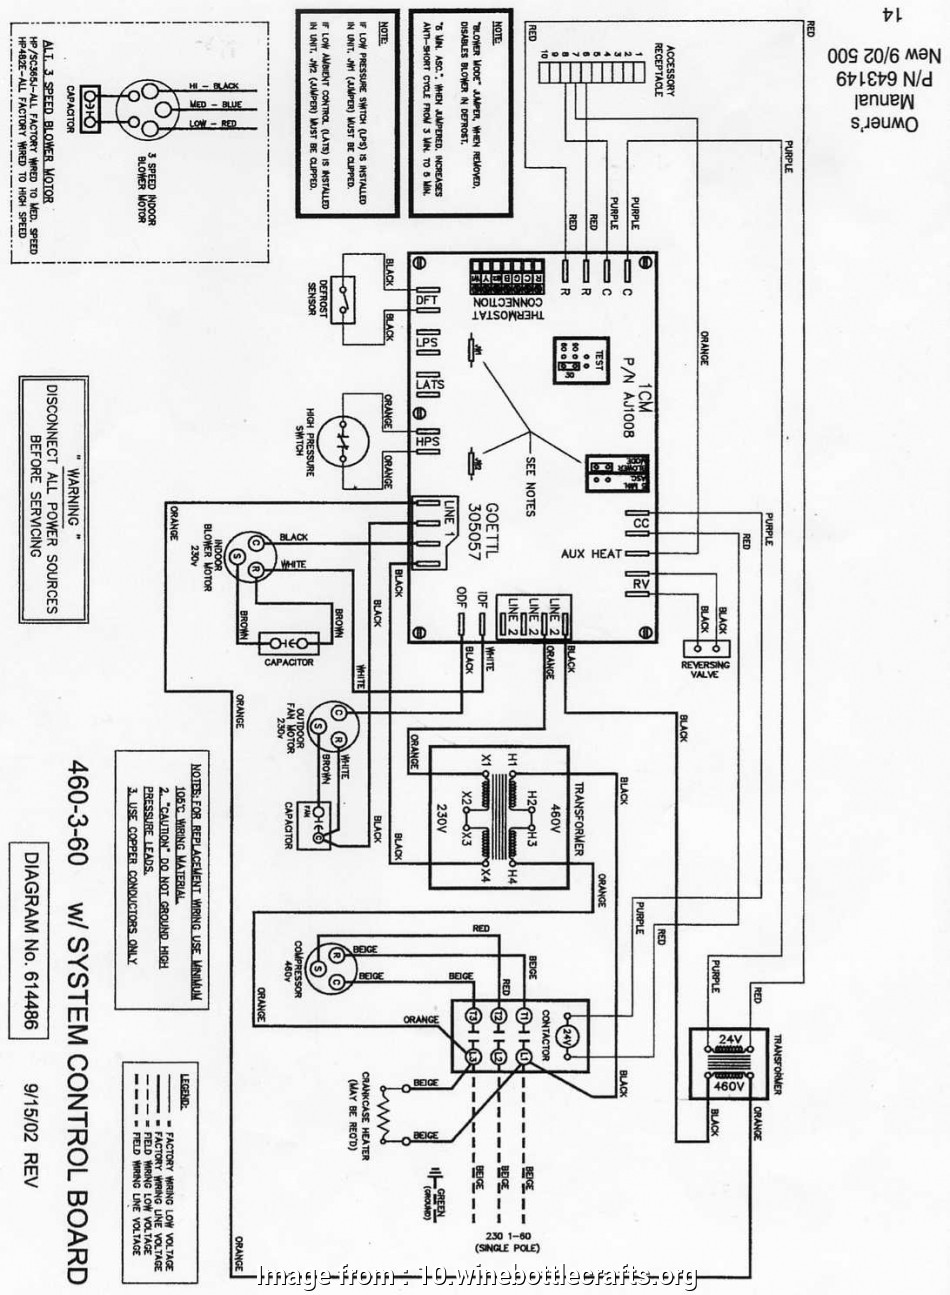 Trane Xr80 Thermostat Wiring Diagram Practical Instruction